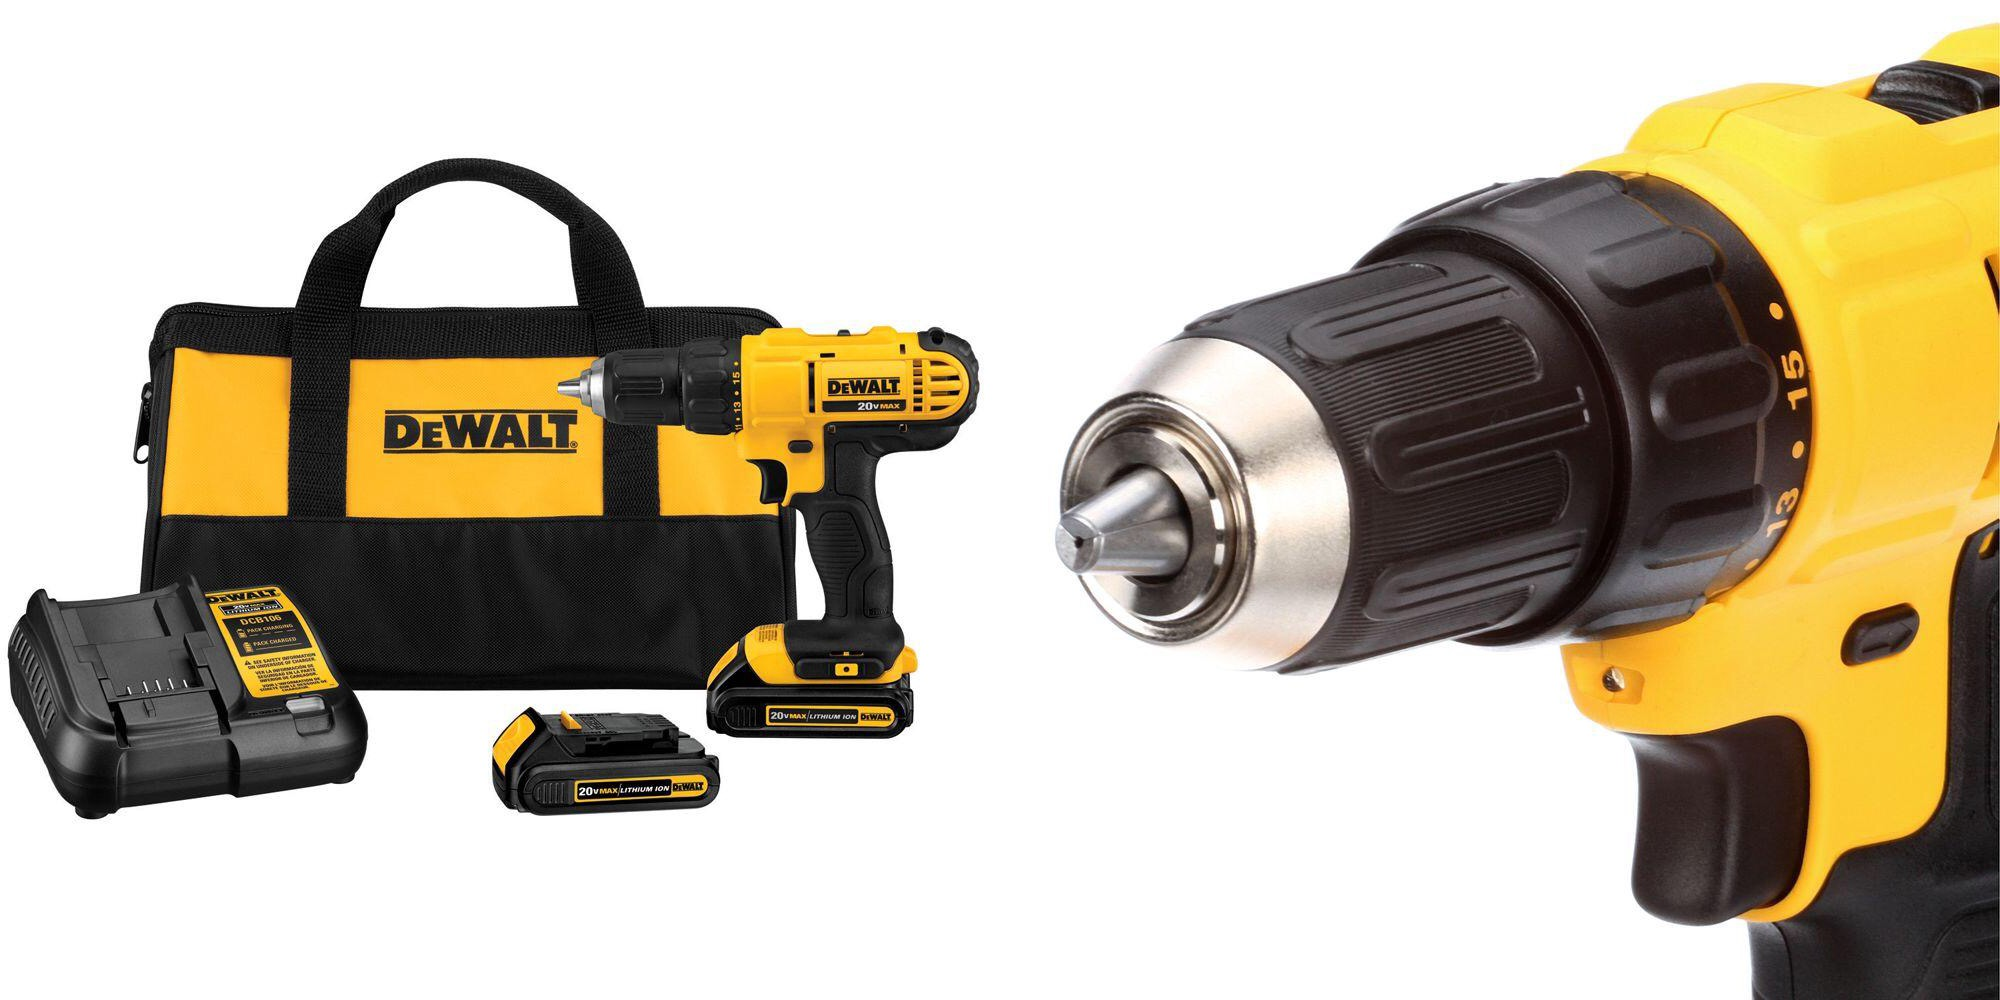 DEWALT's Cordless Drill/Driver Kit comes w/ two batteries: $80 shipped (20% off)